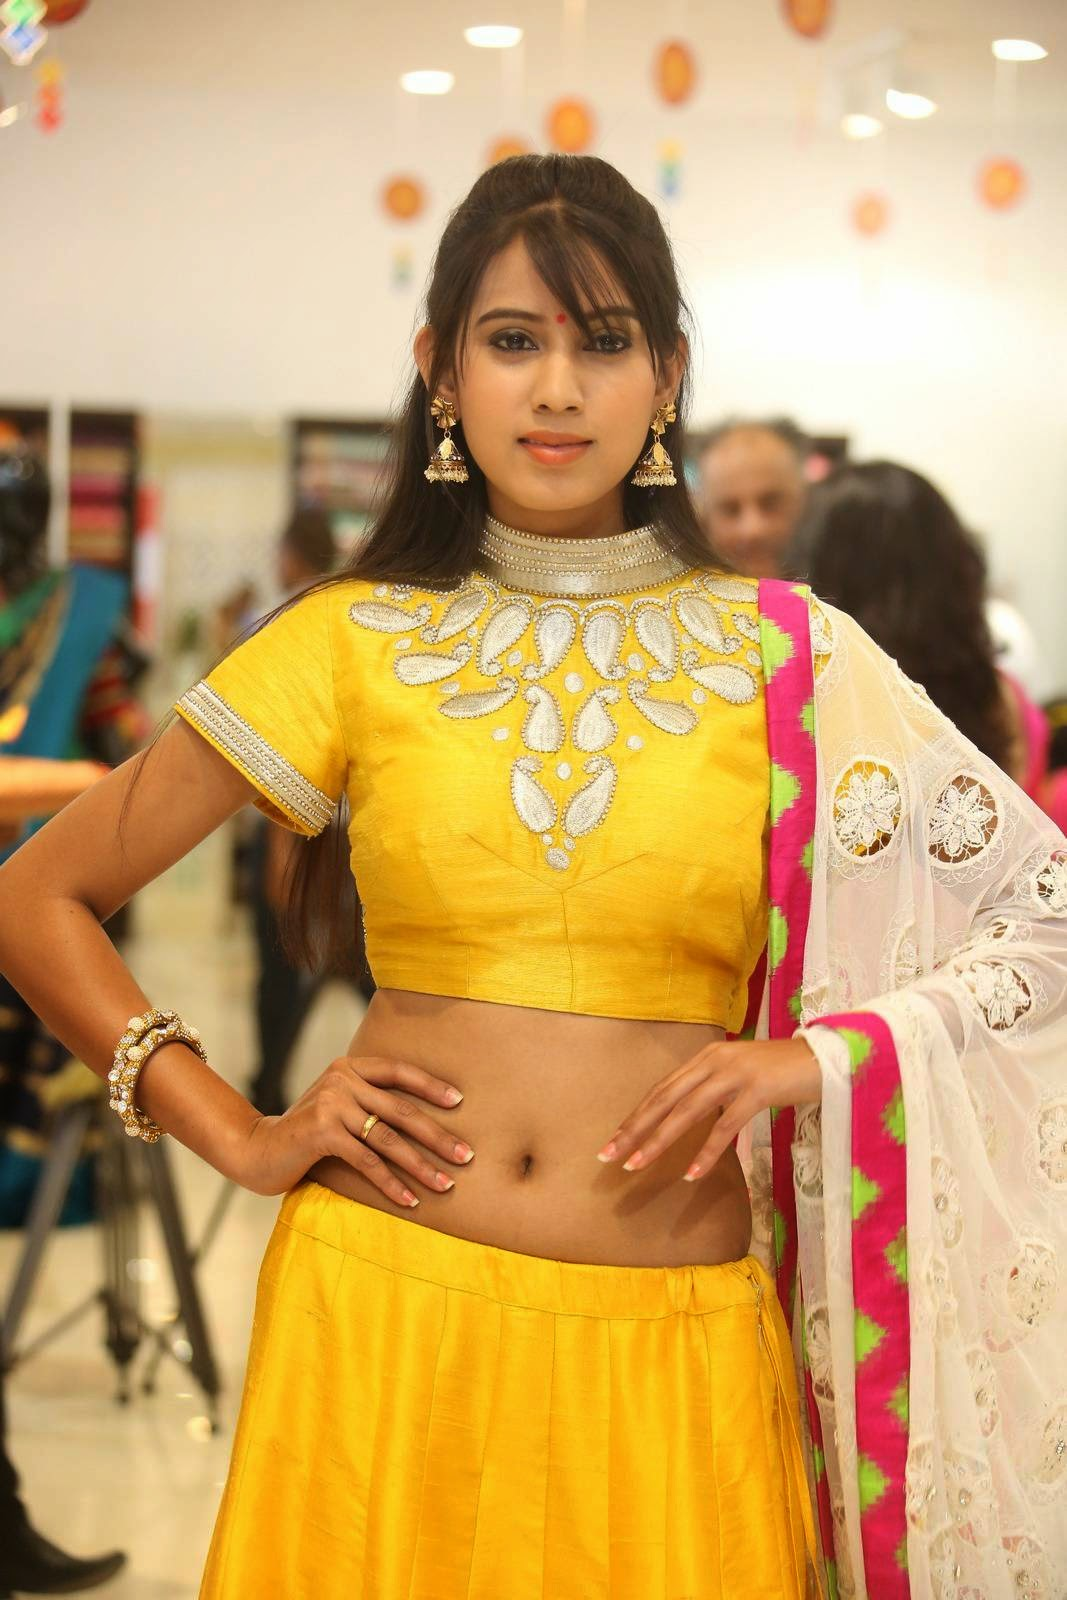 Actress Honey Latest Cute Hot Yellow Dress Navel Show Spicy Photos Gallery At Trisha Boutique Wedding Collection Launch